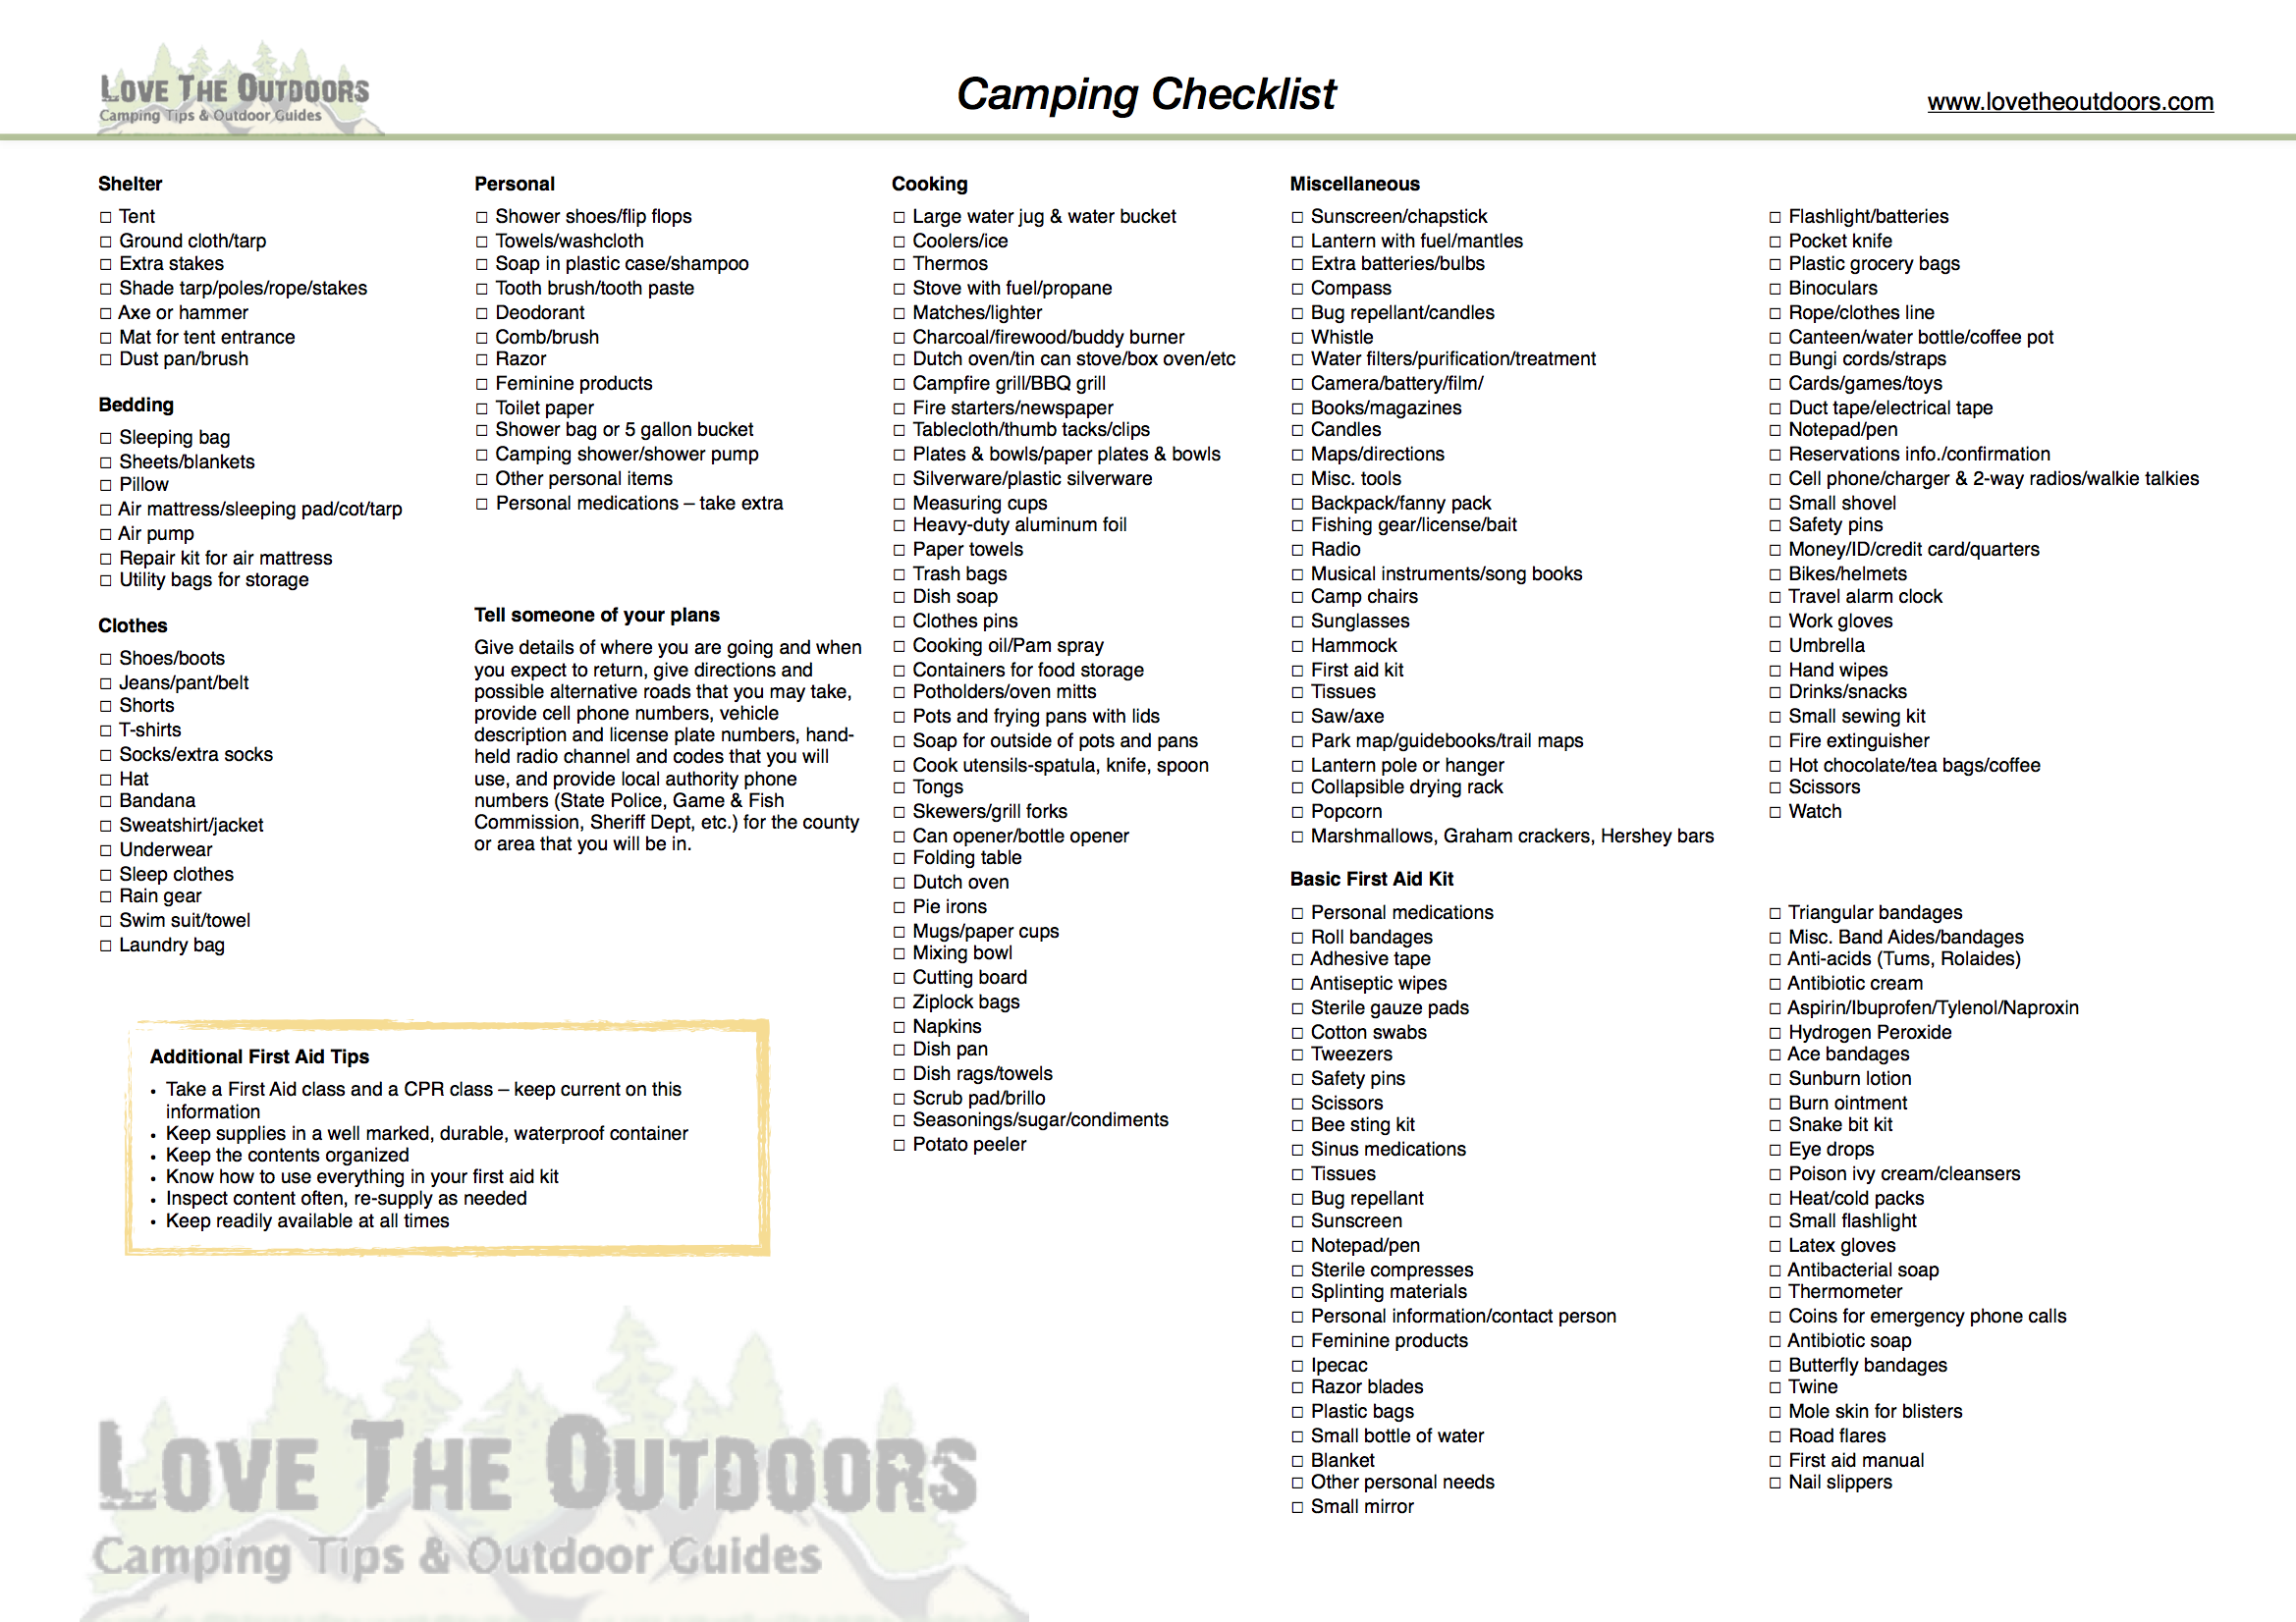 Camping Checklist – Love The Outdoors